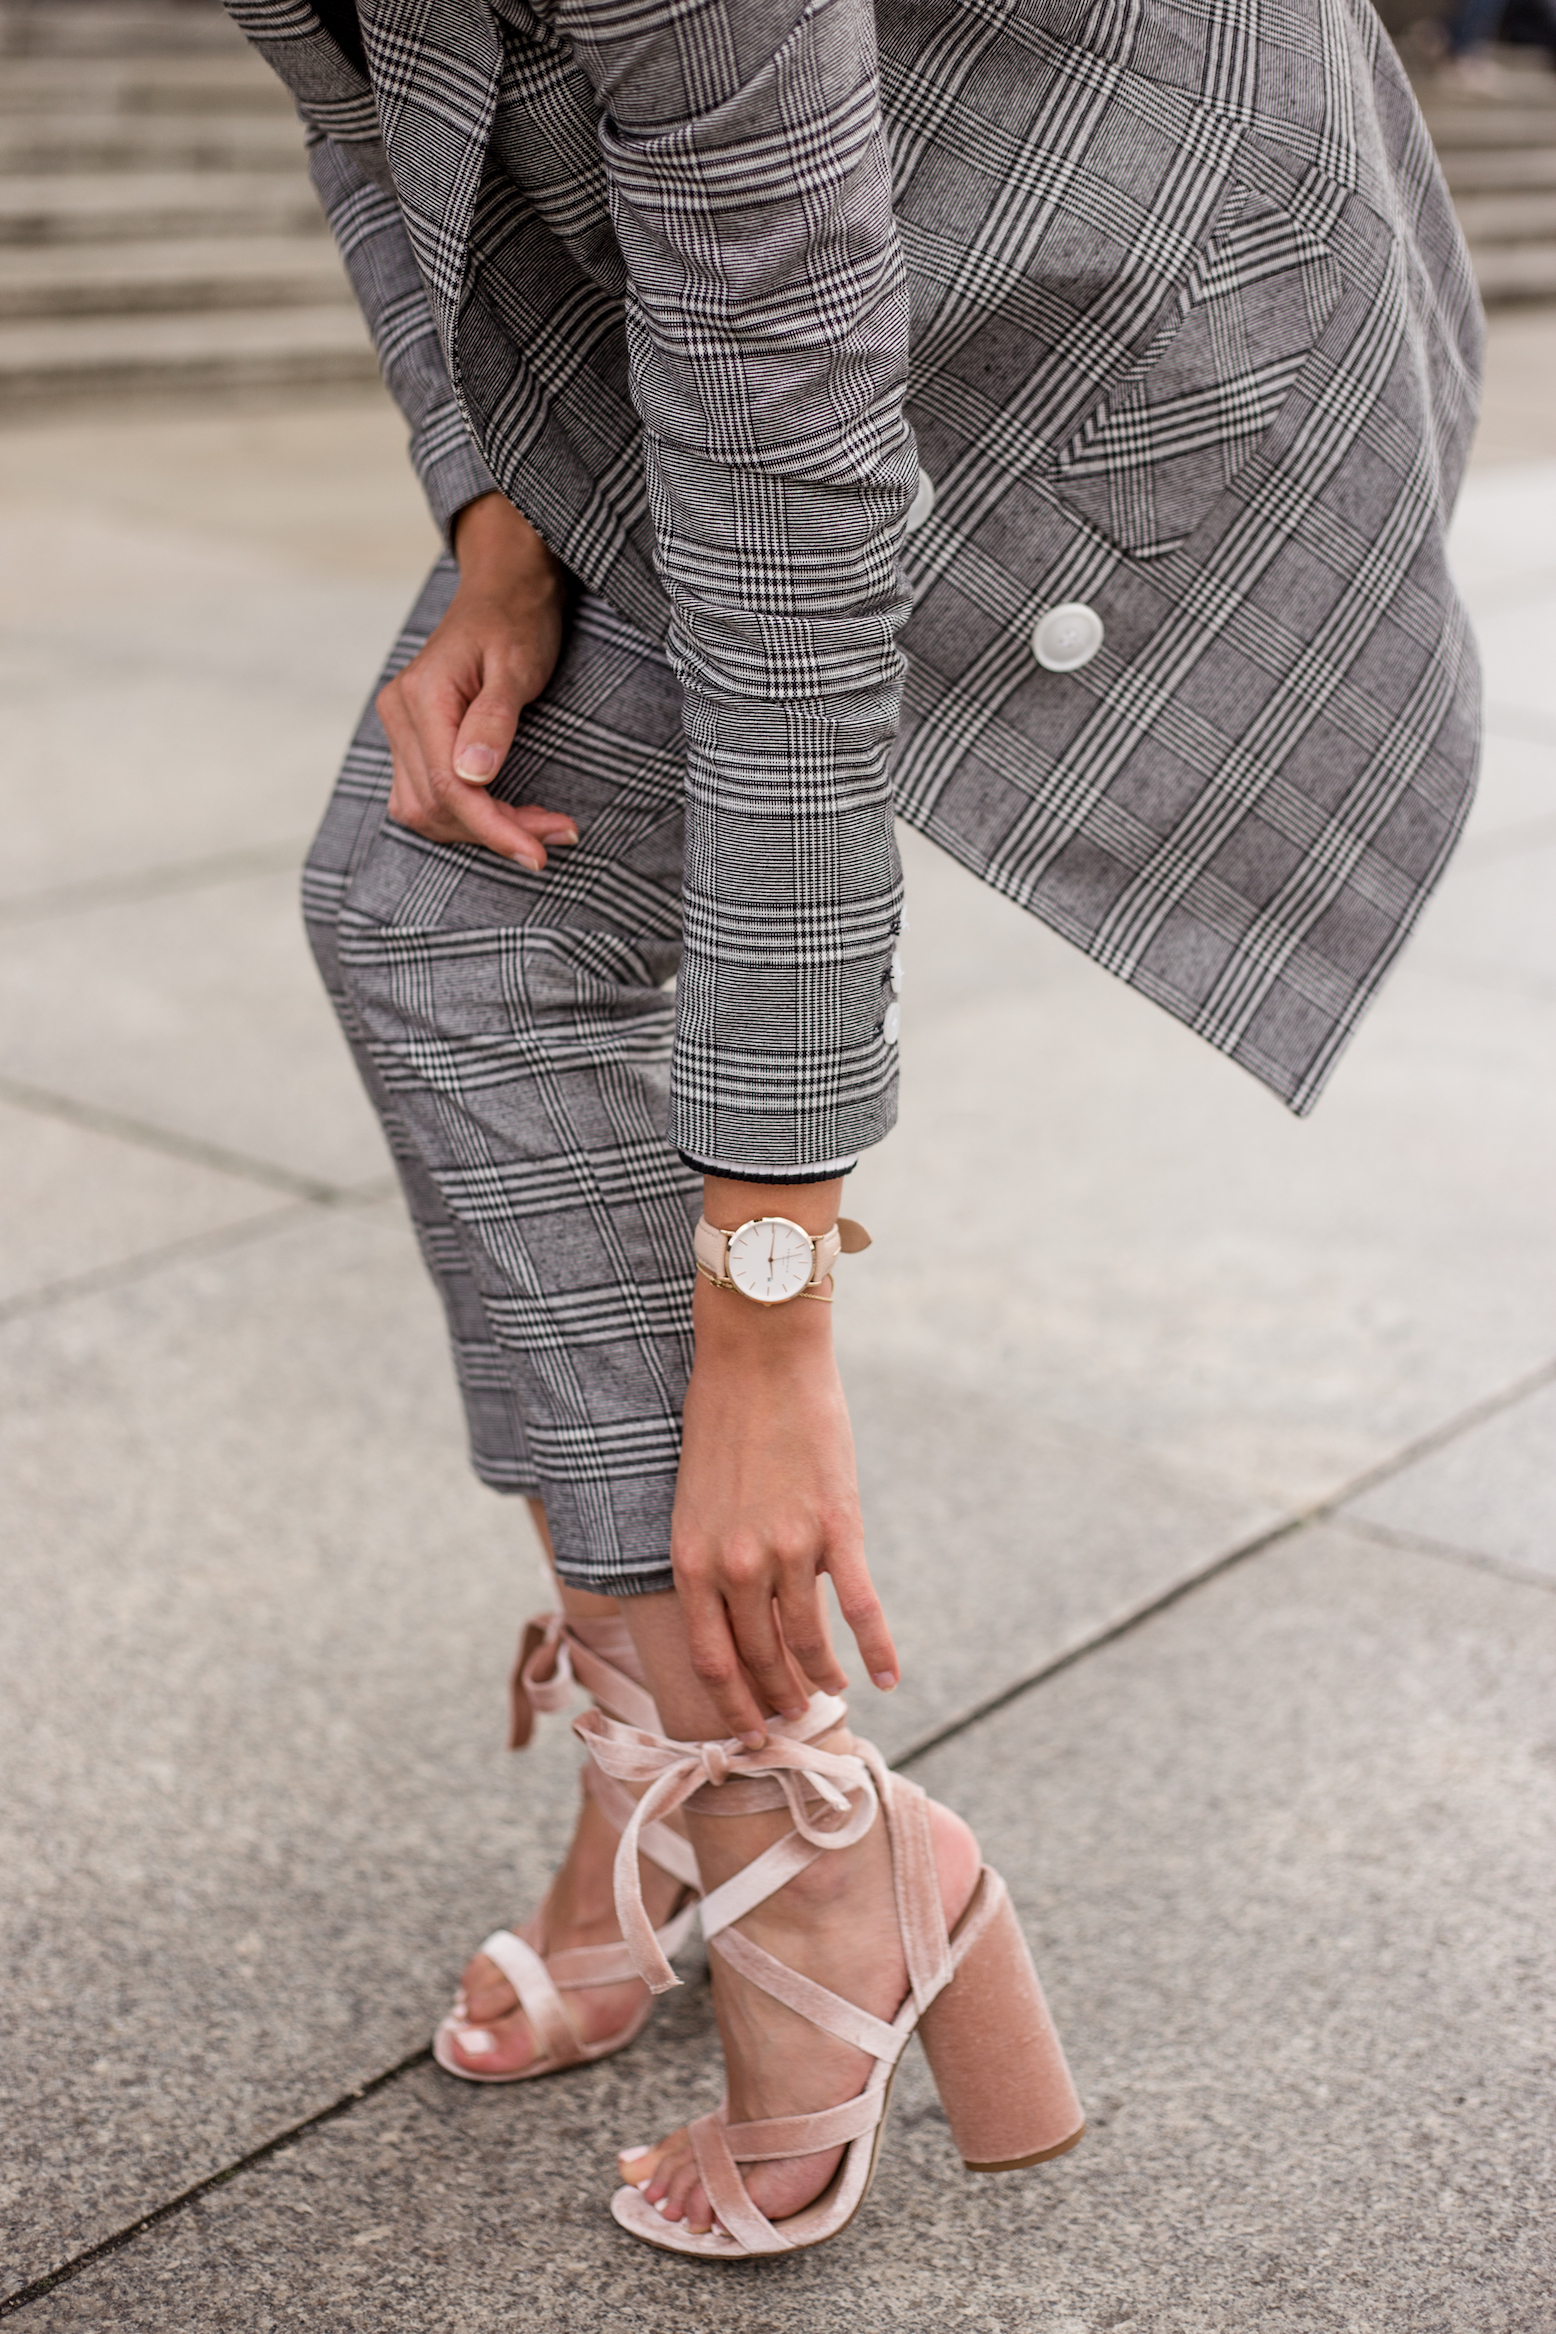 plaid-suit-fendi-leid-livia-auer-IMG_1104